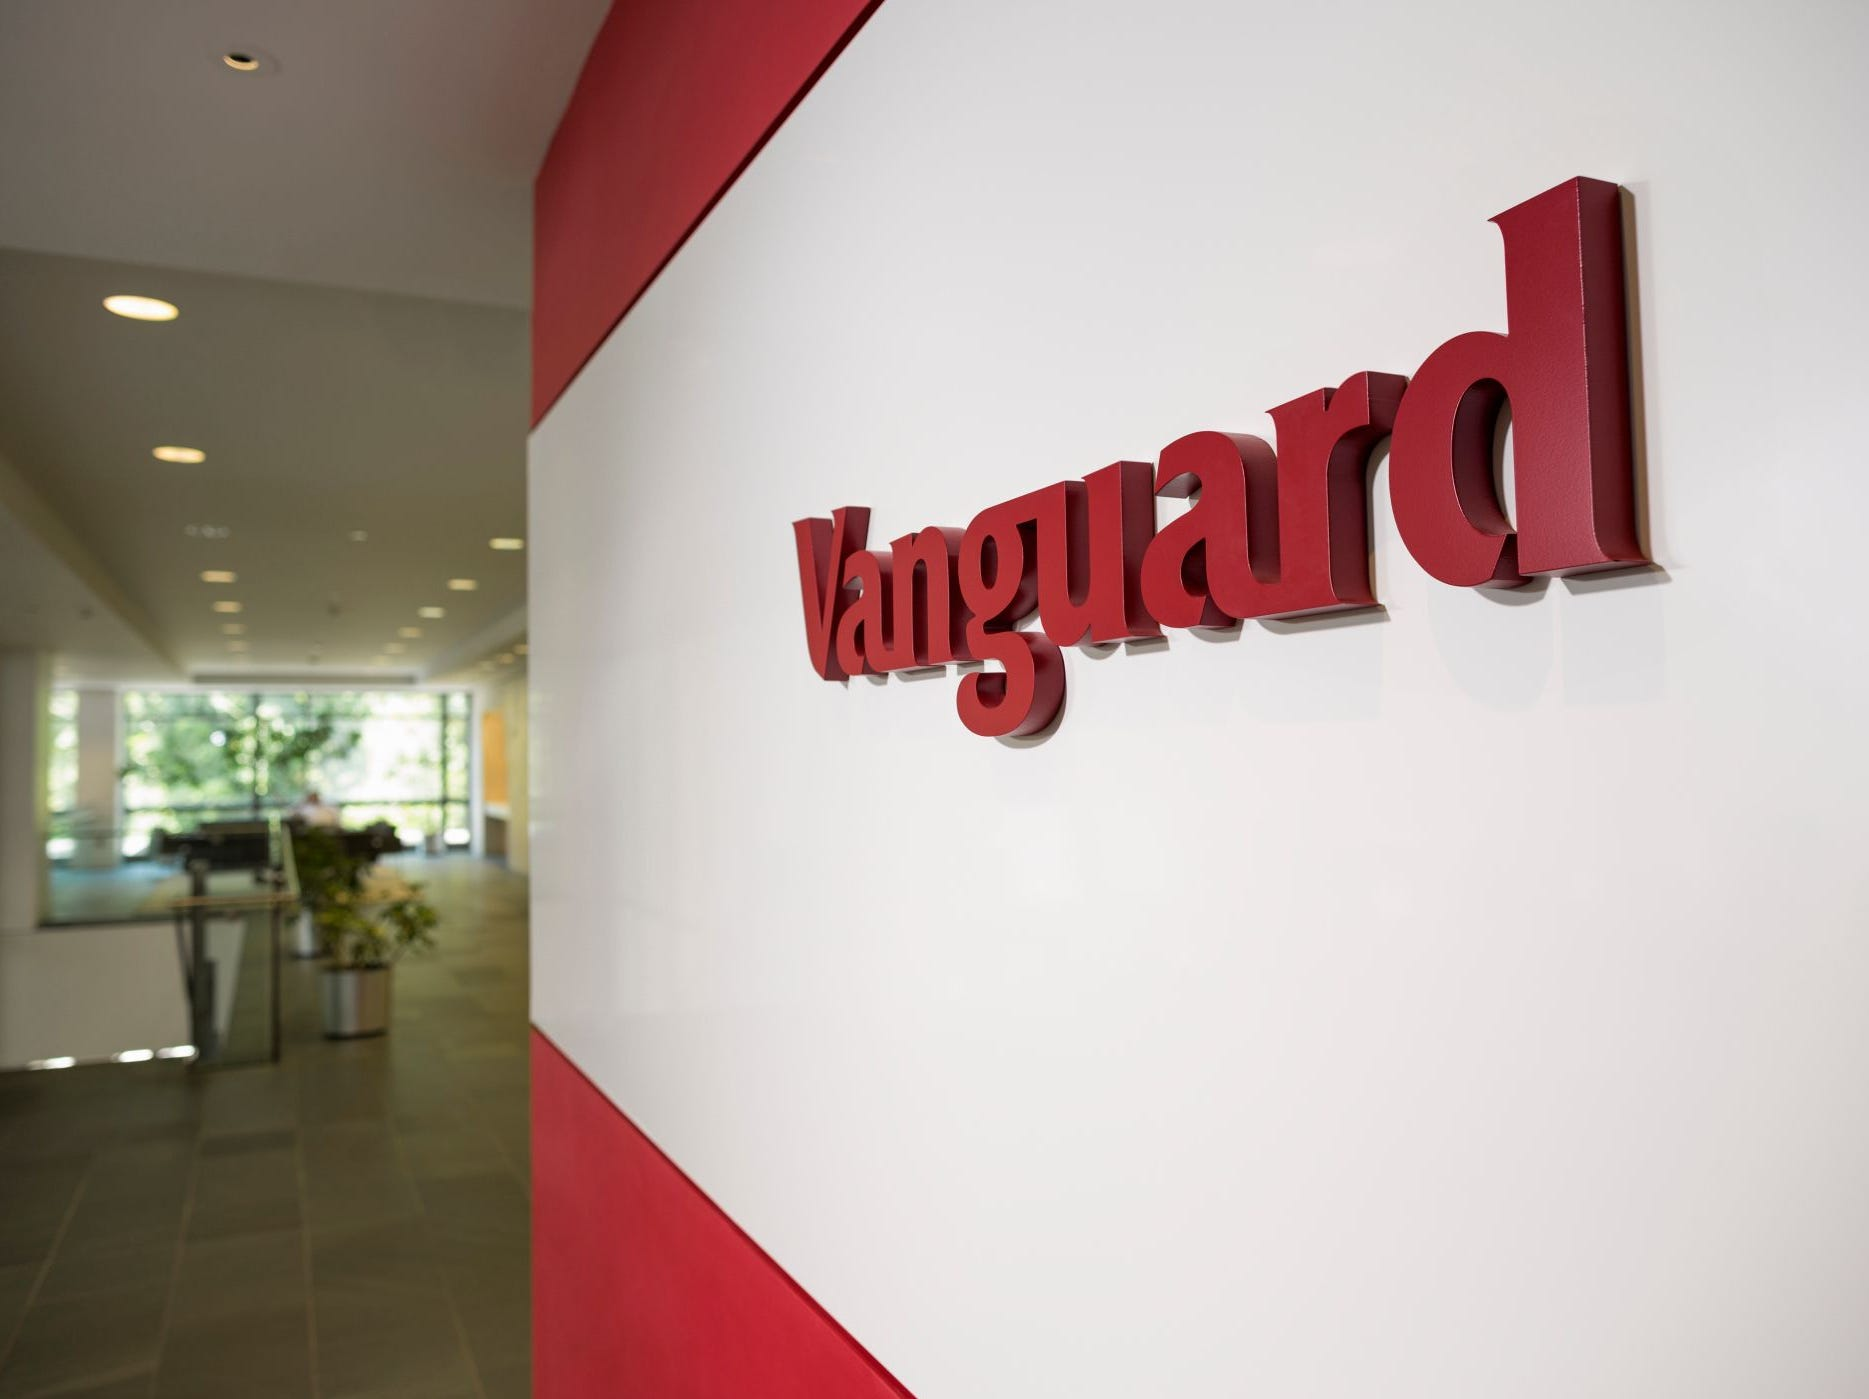 Vanguard Group  Mutual funds, investment services   2019 employees: 3,100   2018 employees: 3,000   Ownership: Mutual   Headquarters: Valley Forge, Pennsylvania   www.vanguard.com